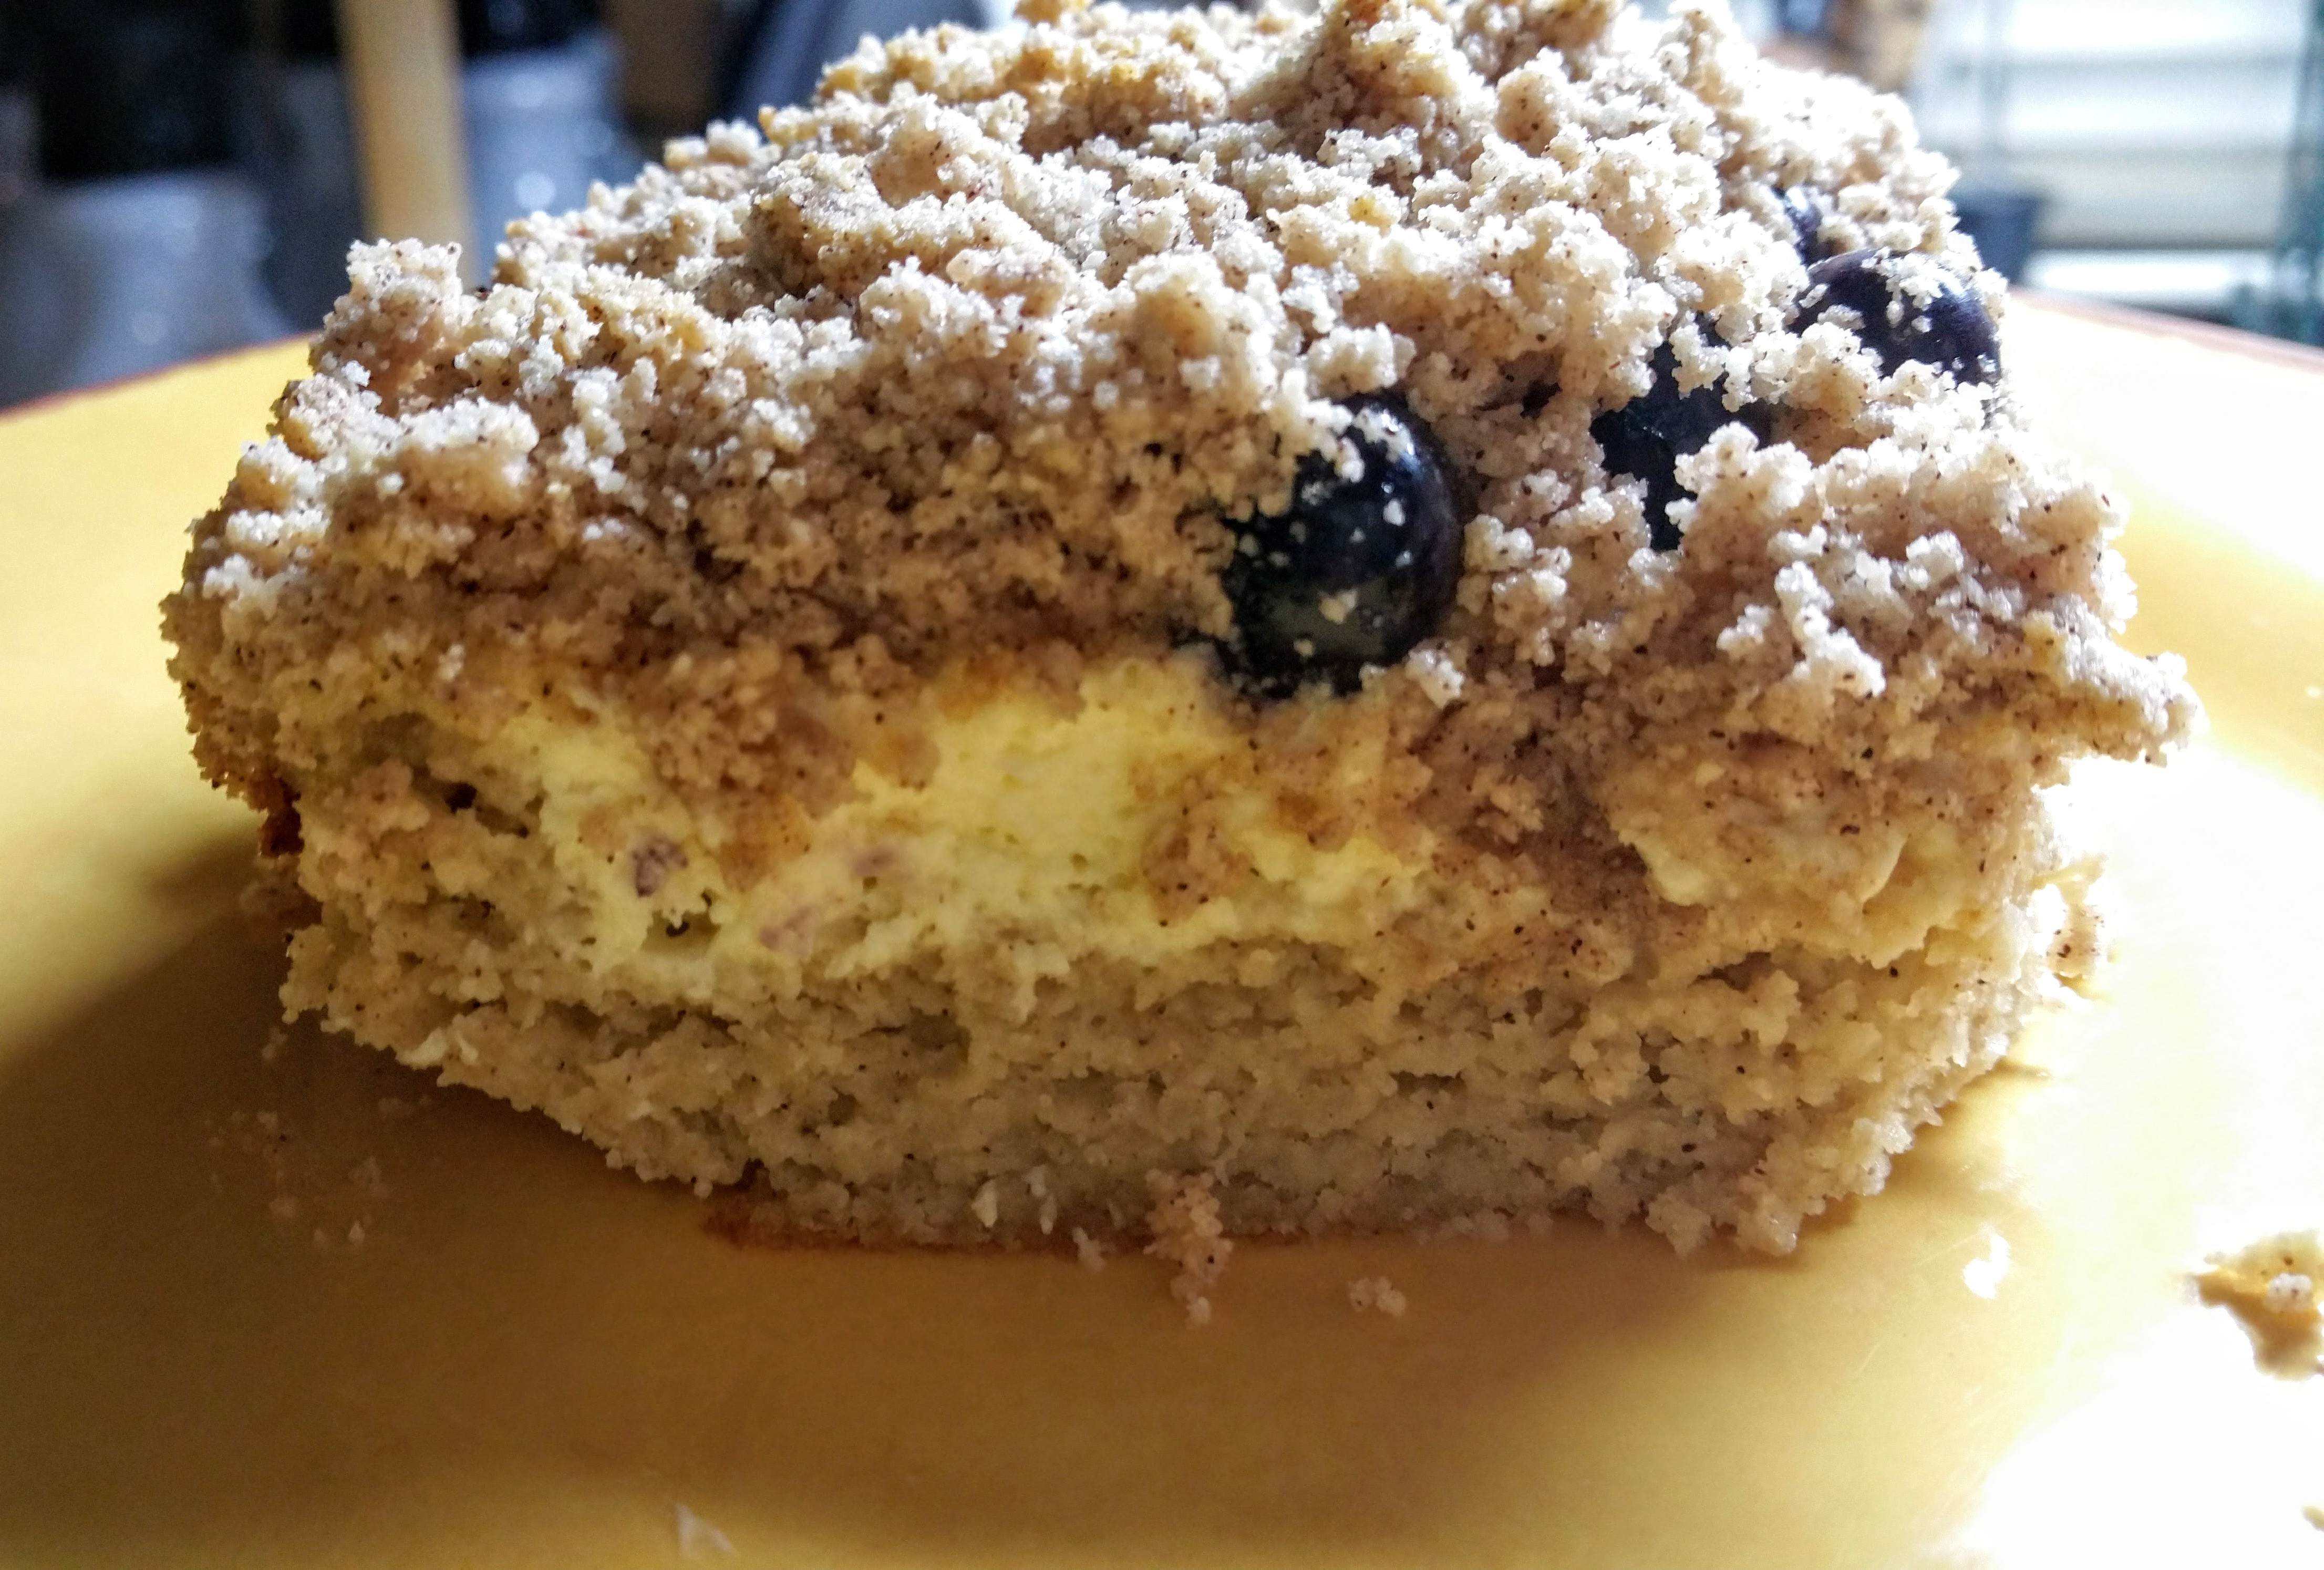 Slice of low carb blueberry cream cheese coffee cake